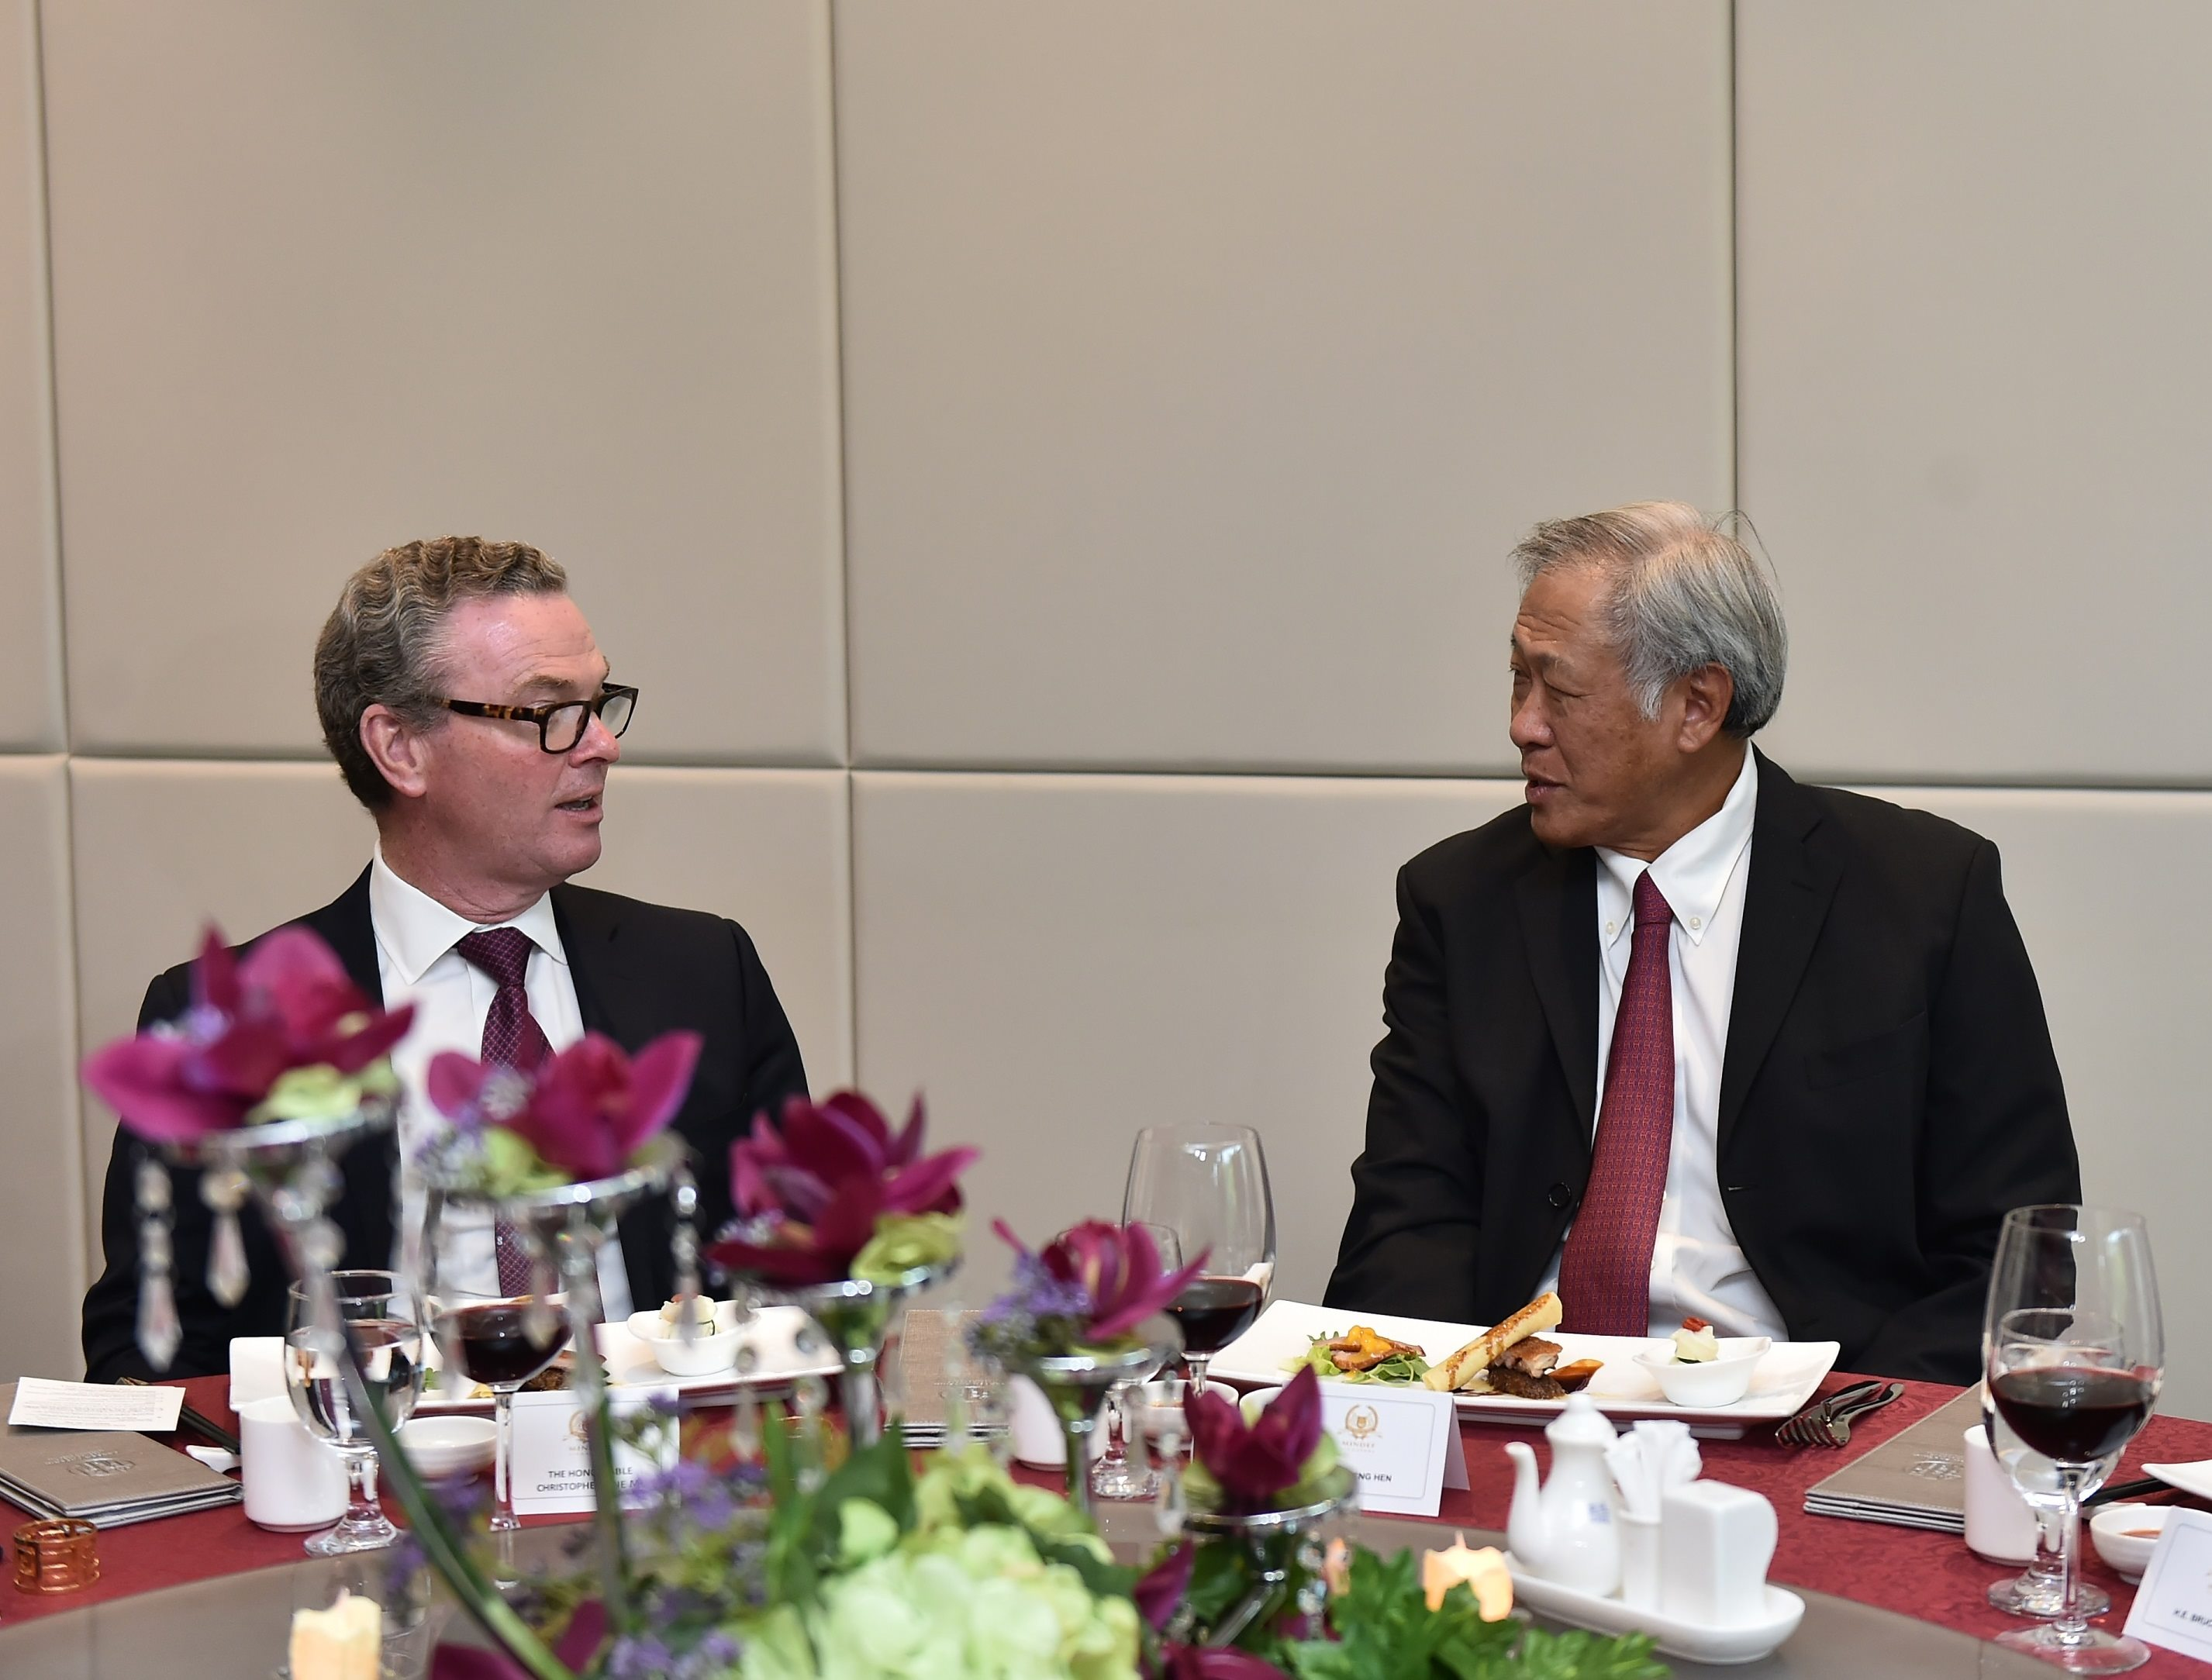 Minister for Defence Dr Ng Eng Hen (right) hosting a lunch for Australian Minister for Defence Christopher Pyne (left) earlier today.